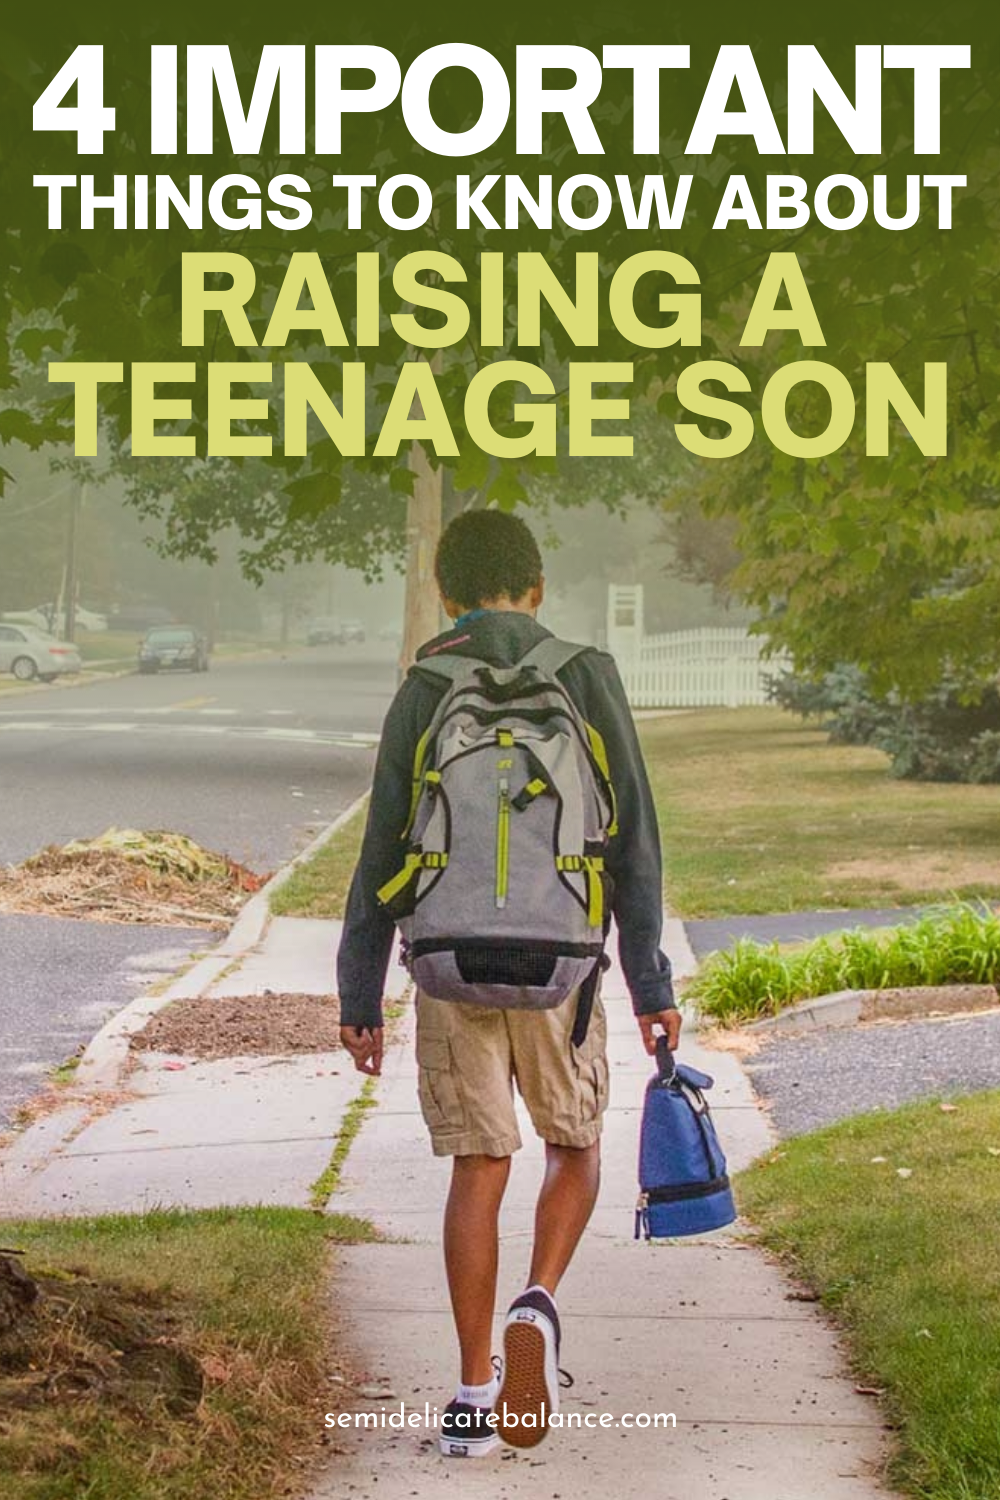 Important Things to Know About Raising a Teenage Son, Tips For Parenting Teen boys